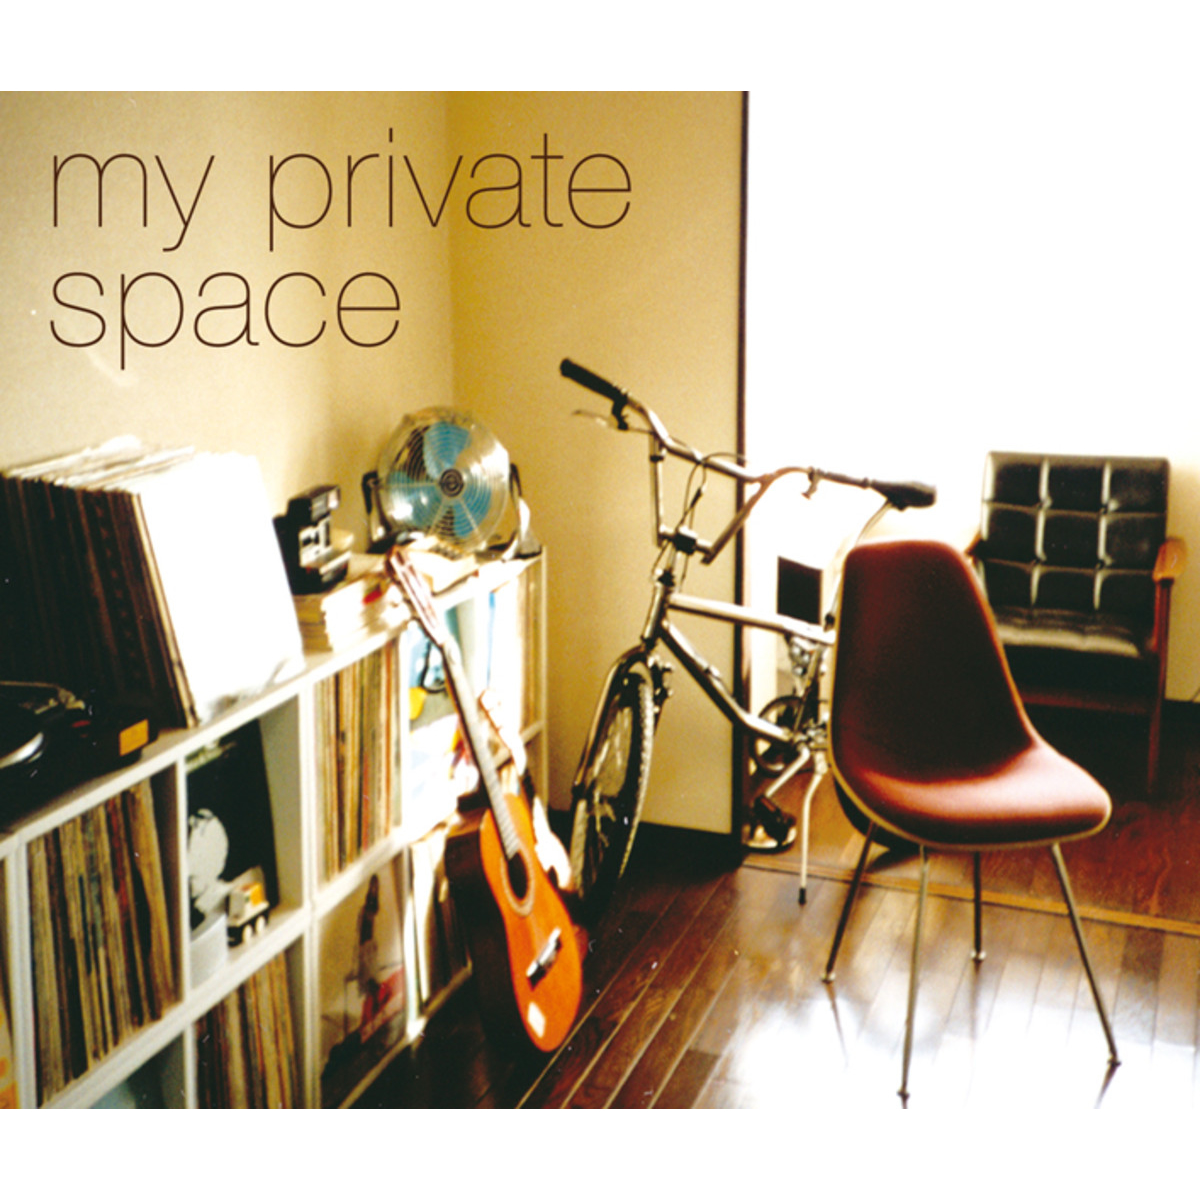 p*dis / Inpartmaint inc|My Private Space CD|Photography|写真|東京都渋谷